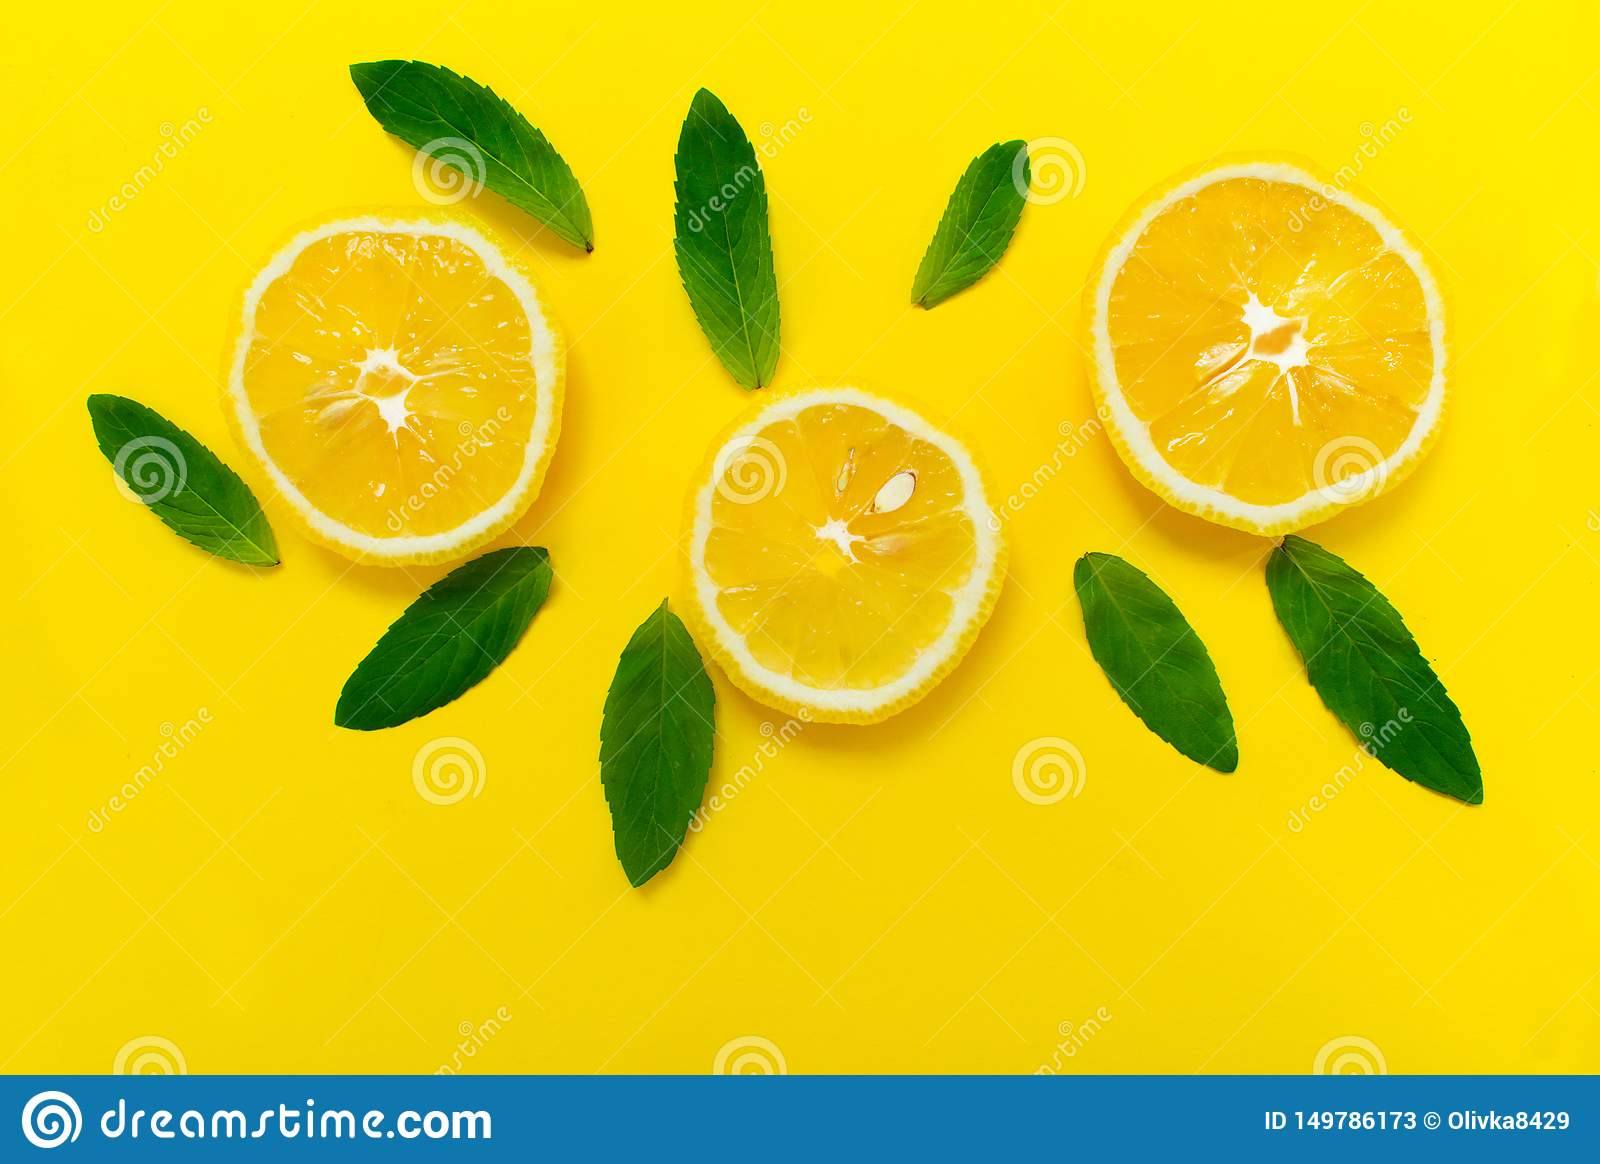 Sliced lemon and mint leaves on a bright yellow background. Background for the design of banners, websites.